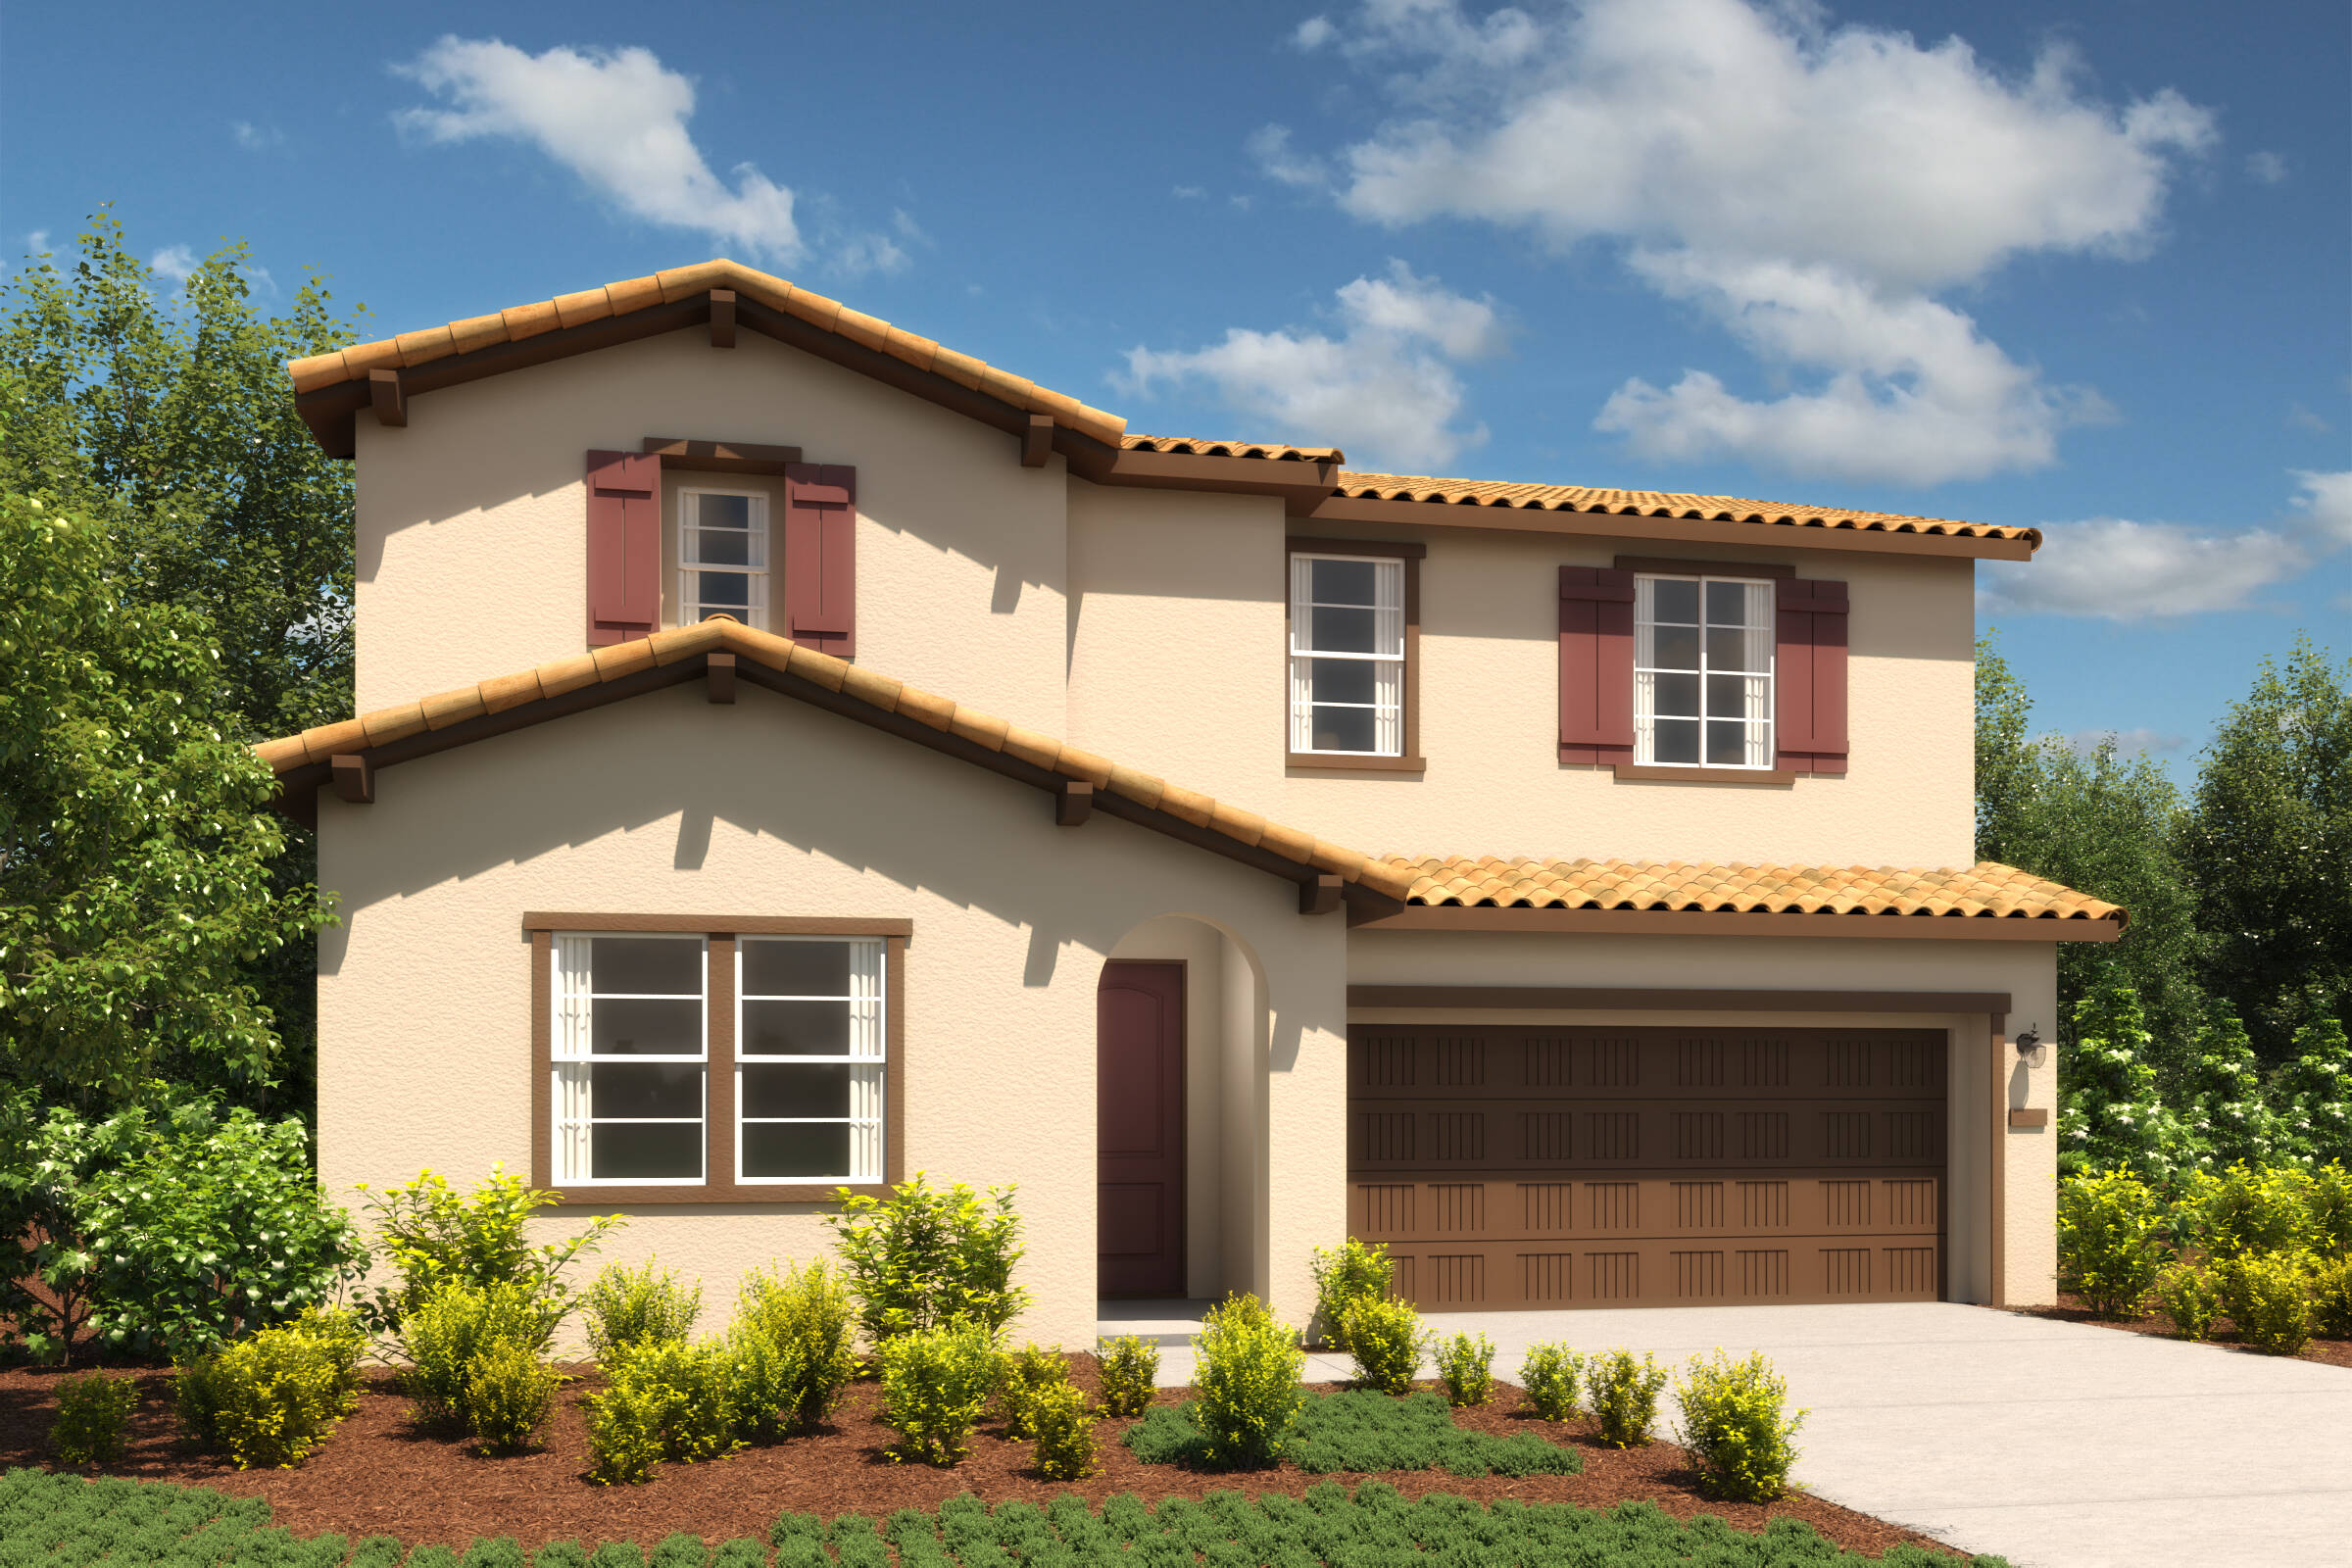 4066 onyx a spanish colonial new homes in lincoln california